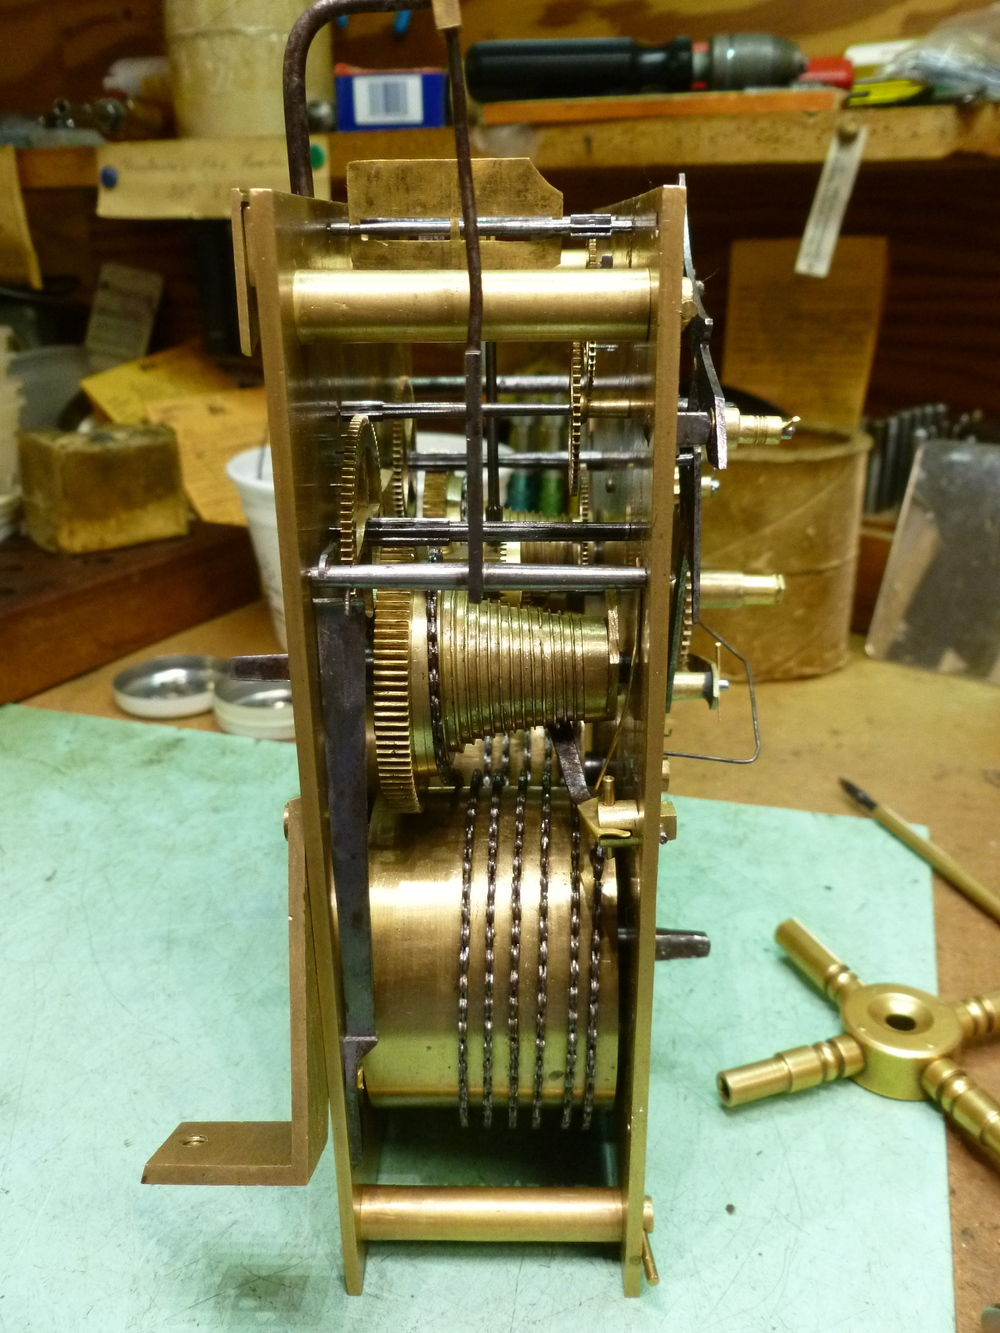 There is a large mainspring in the barrel on the bottom. To wind the clock, you wind the chain onto the cone in the middle of the movement. The theory behind the cone is that when the clock is nearing the end of the weak and the mainspring is running out of power, it provides the same amount of power to the mechanism using an adjusting ratio.